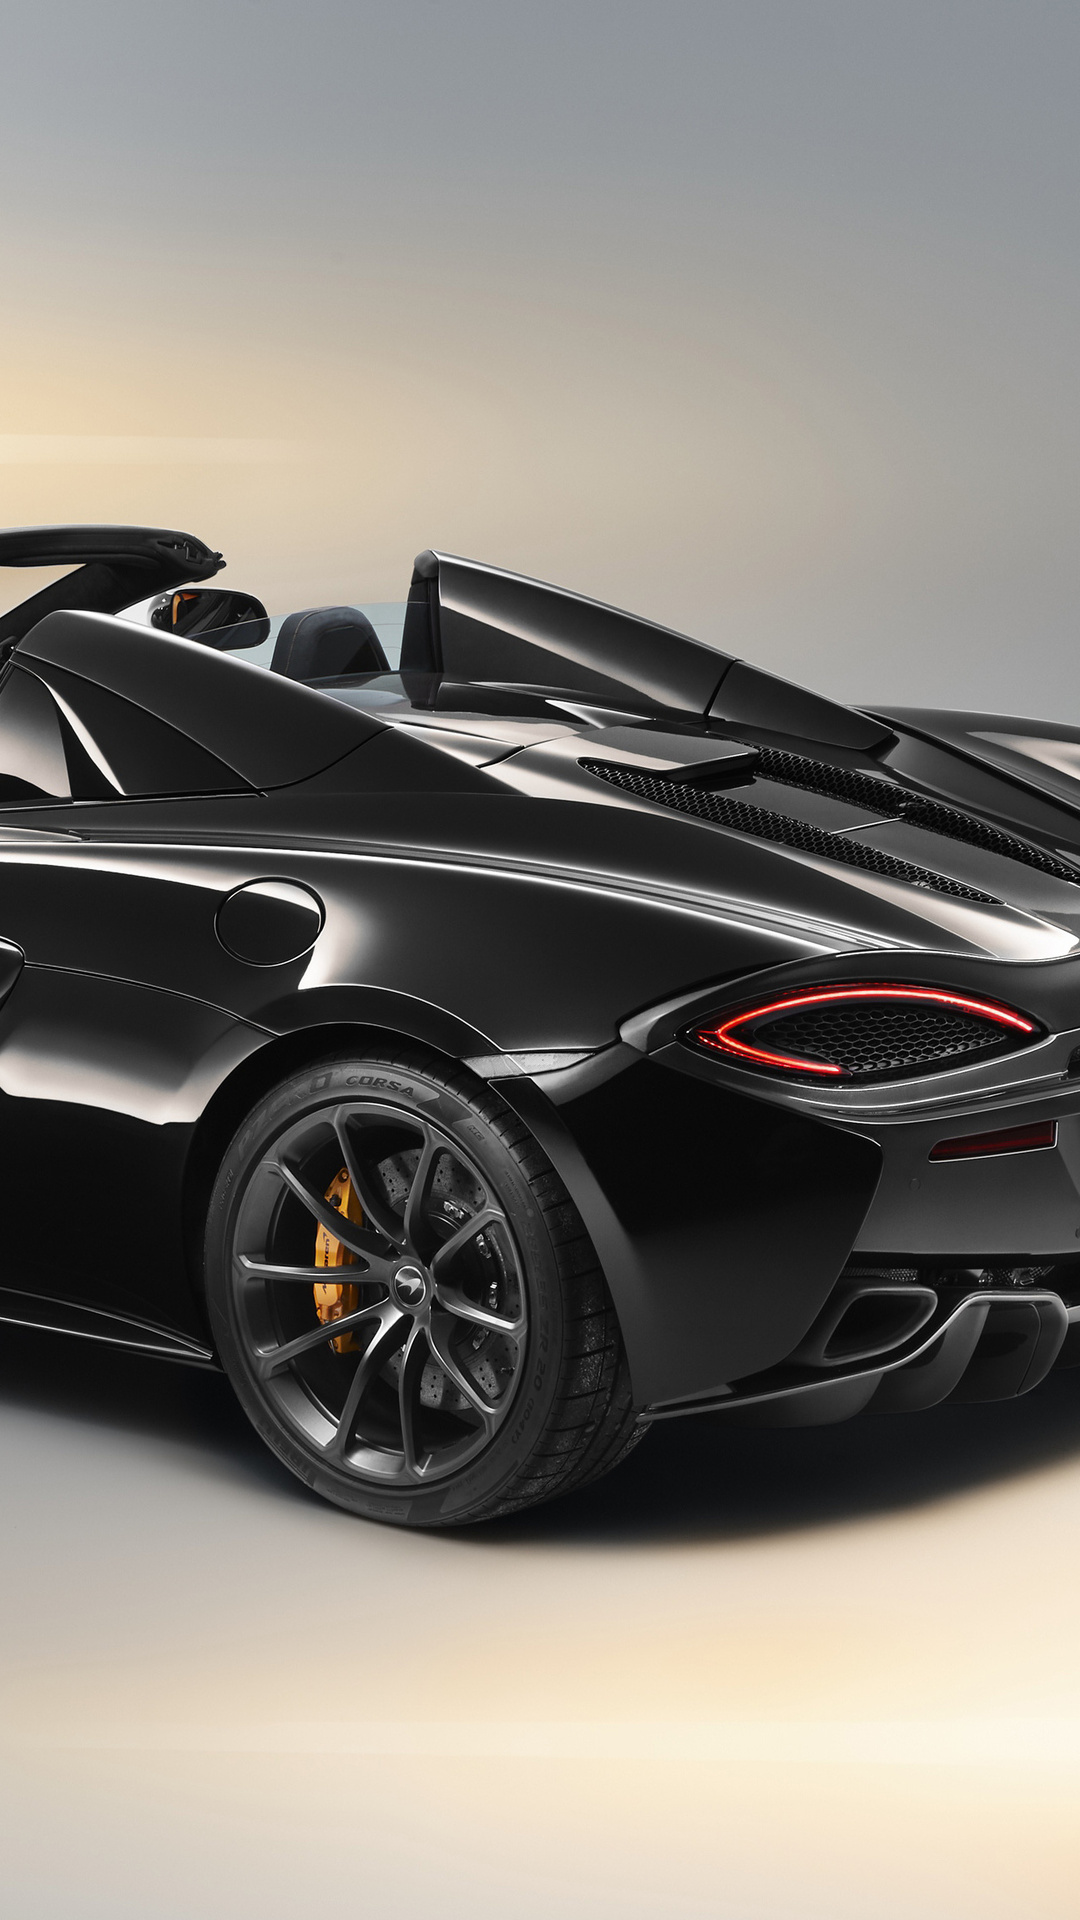 mclaren-570s-spider-design-edition-2018-rear-cz.jpg